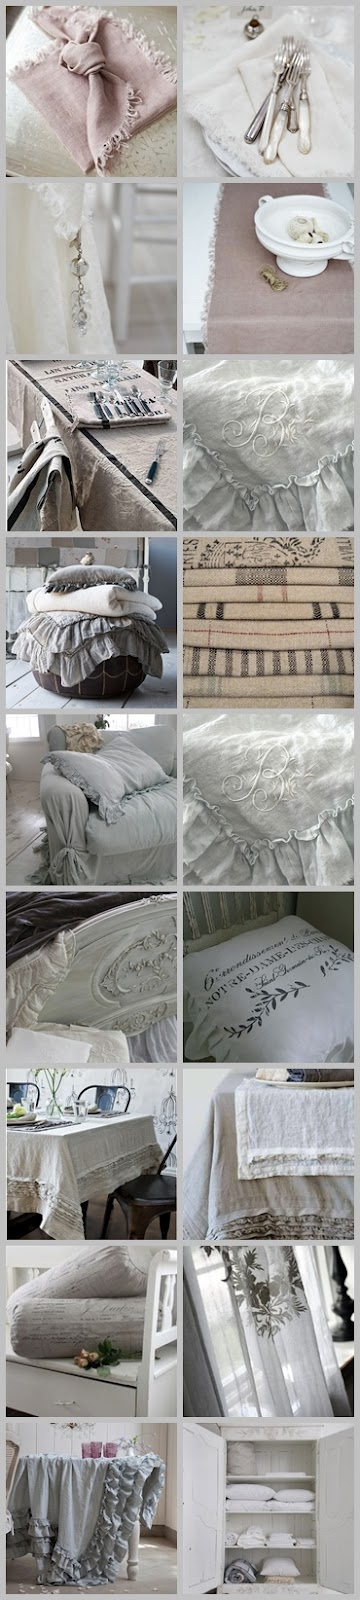 linen collection vintage pinterest leinen farben und shabby chic. Black Bedroom Furniture Sets. Home Design Ideas